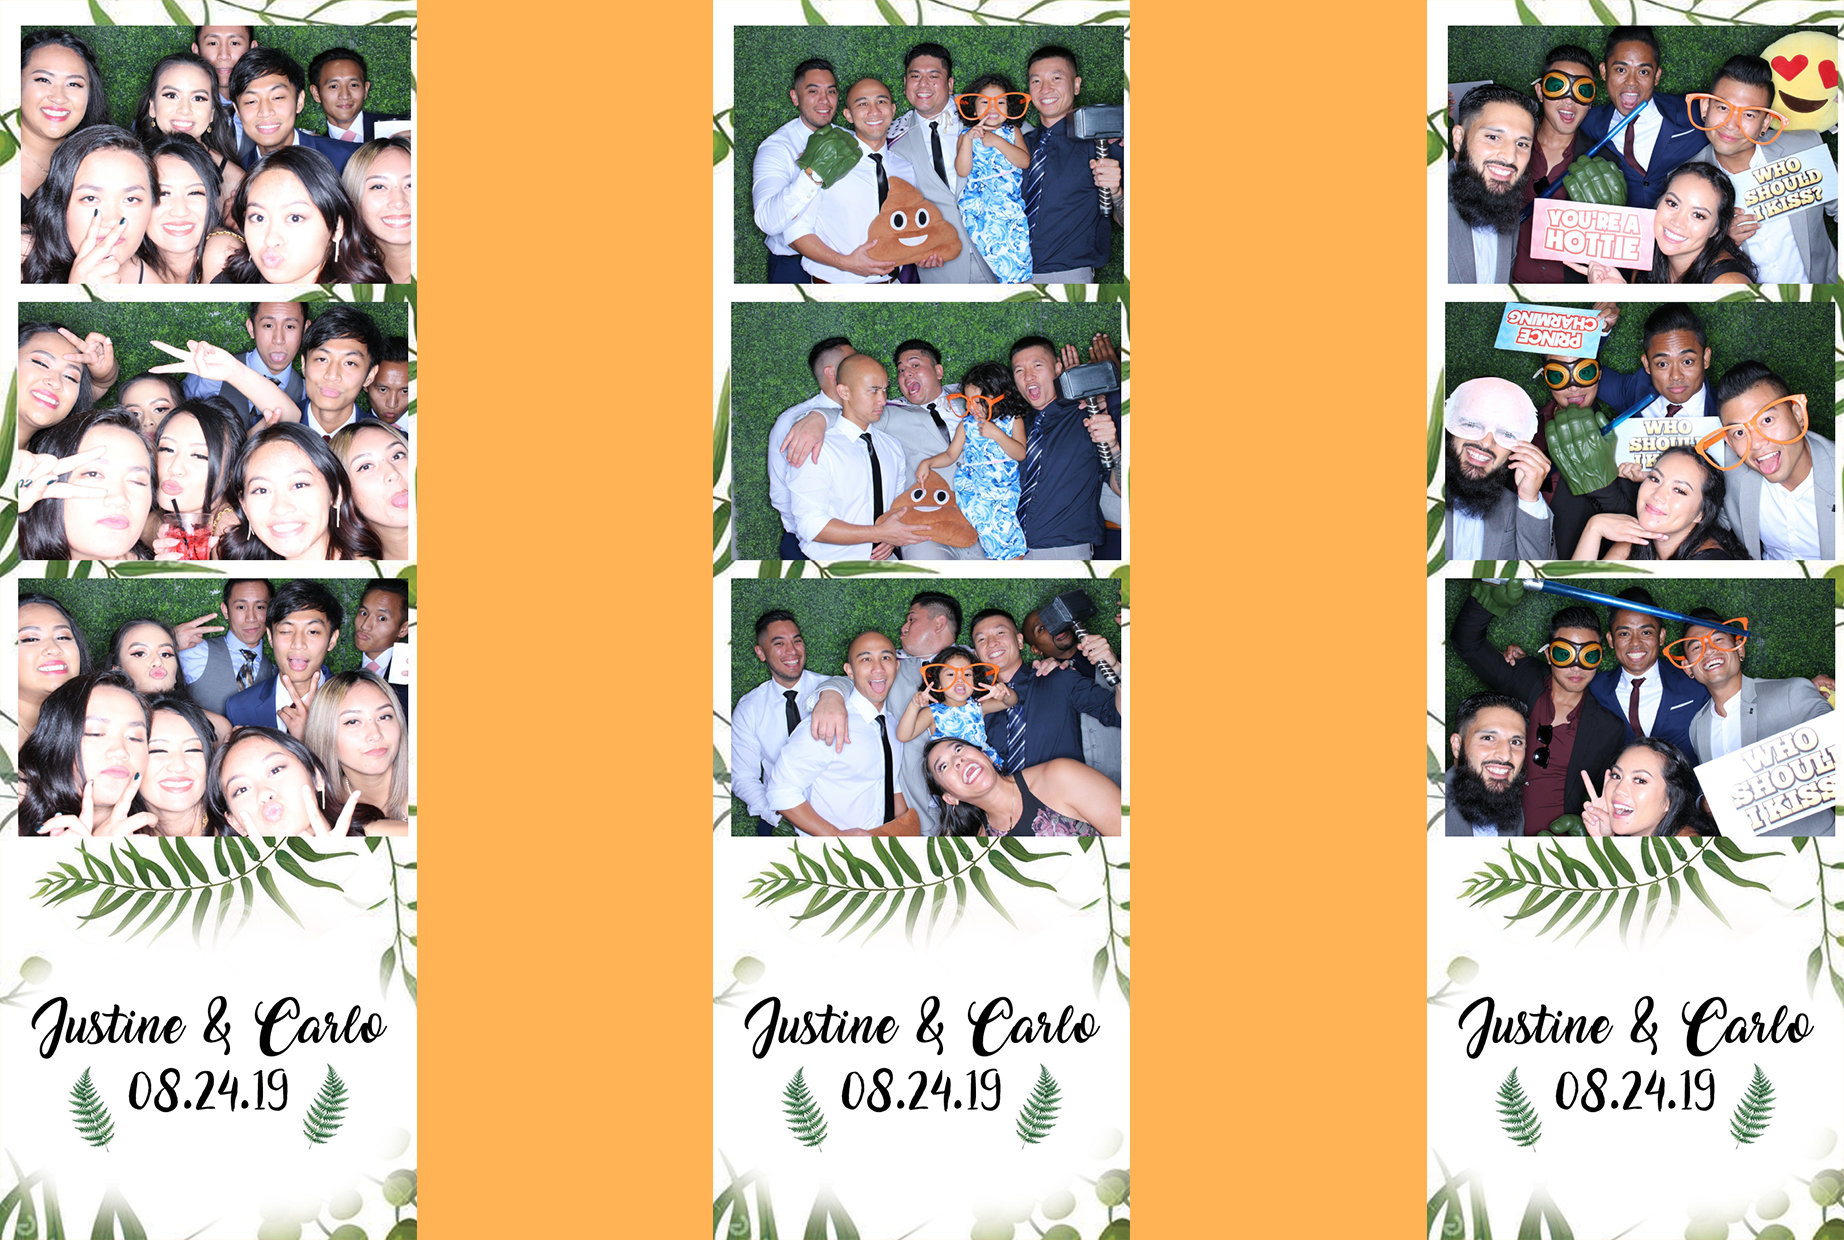 Justine & Carlo Wedding